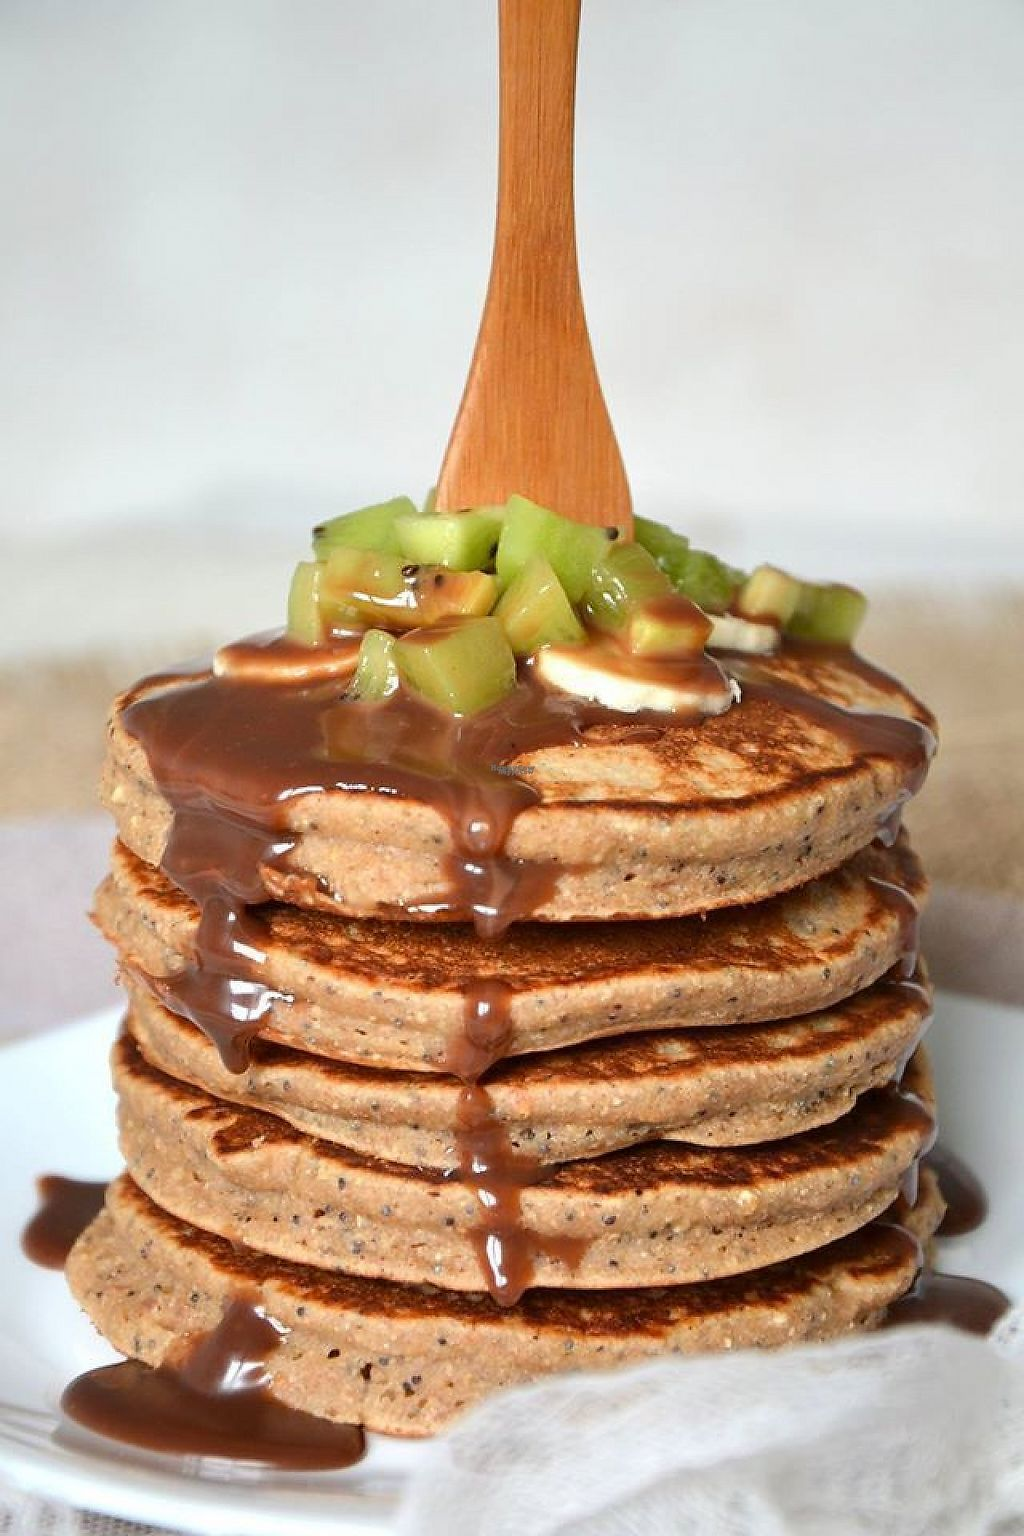 "Photo of La Vie Claire  by <a href=""/members/profile/community"">community</a> <br/>vegan pancakes  <br/> February 4, 2017  - <a href='/contact/abuse/image/72018/221863'>Report</a>"